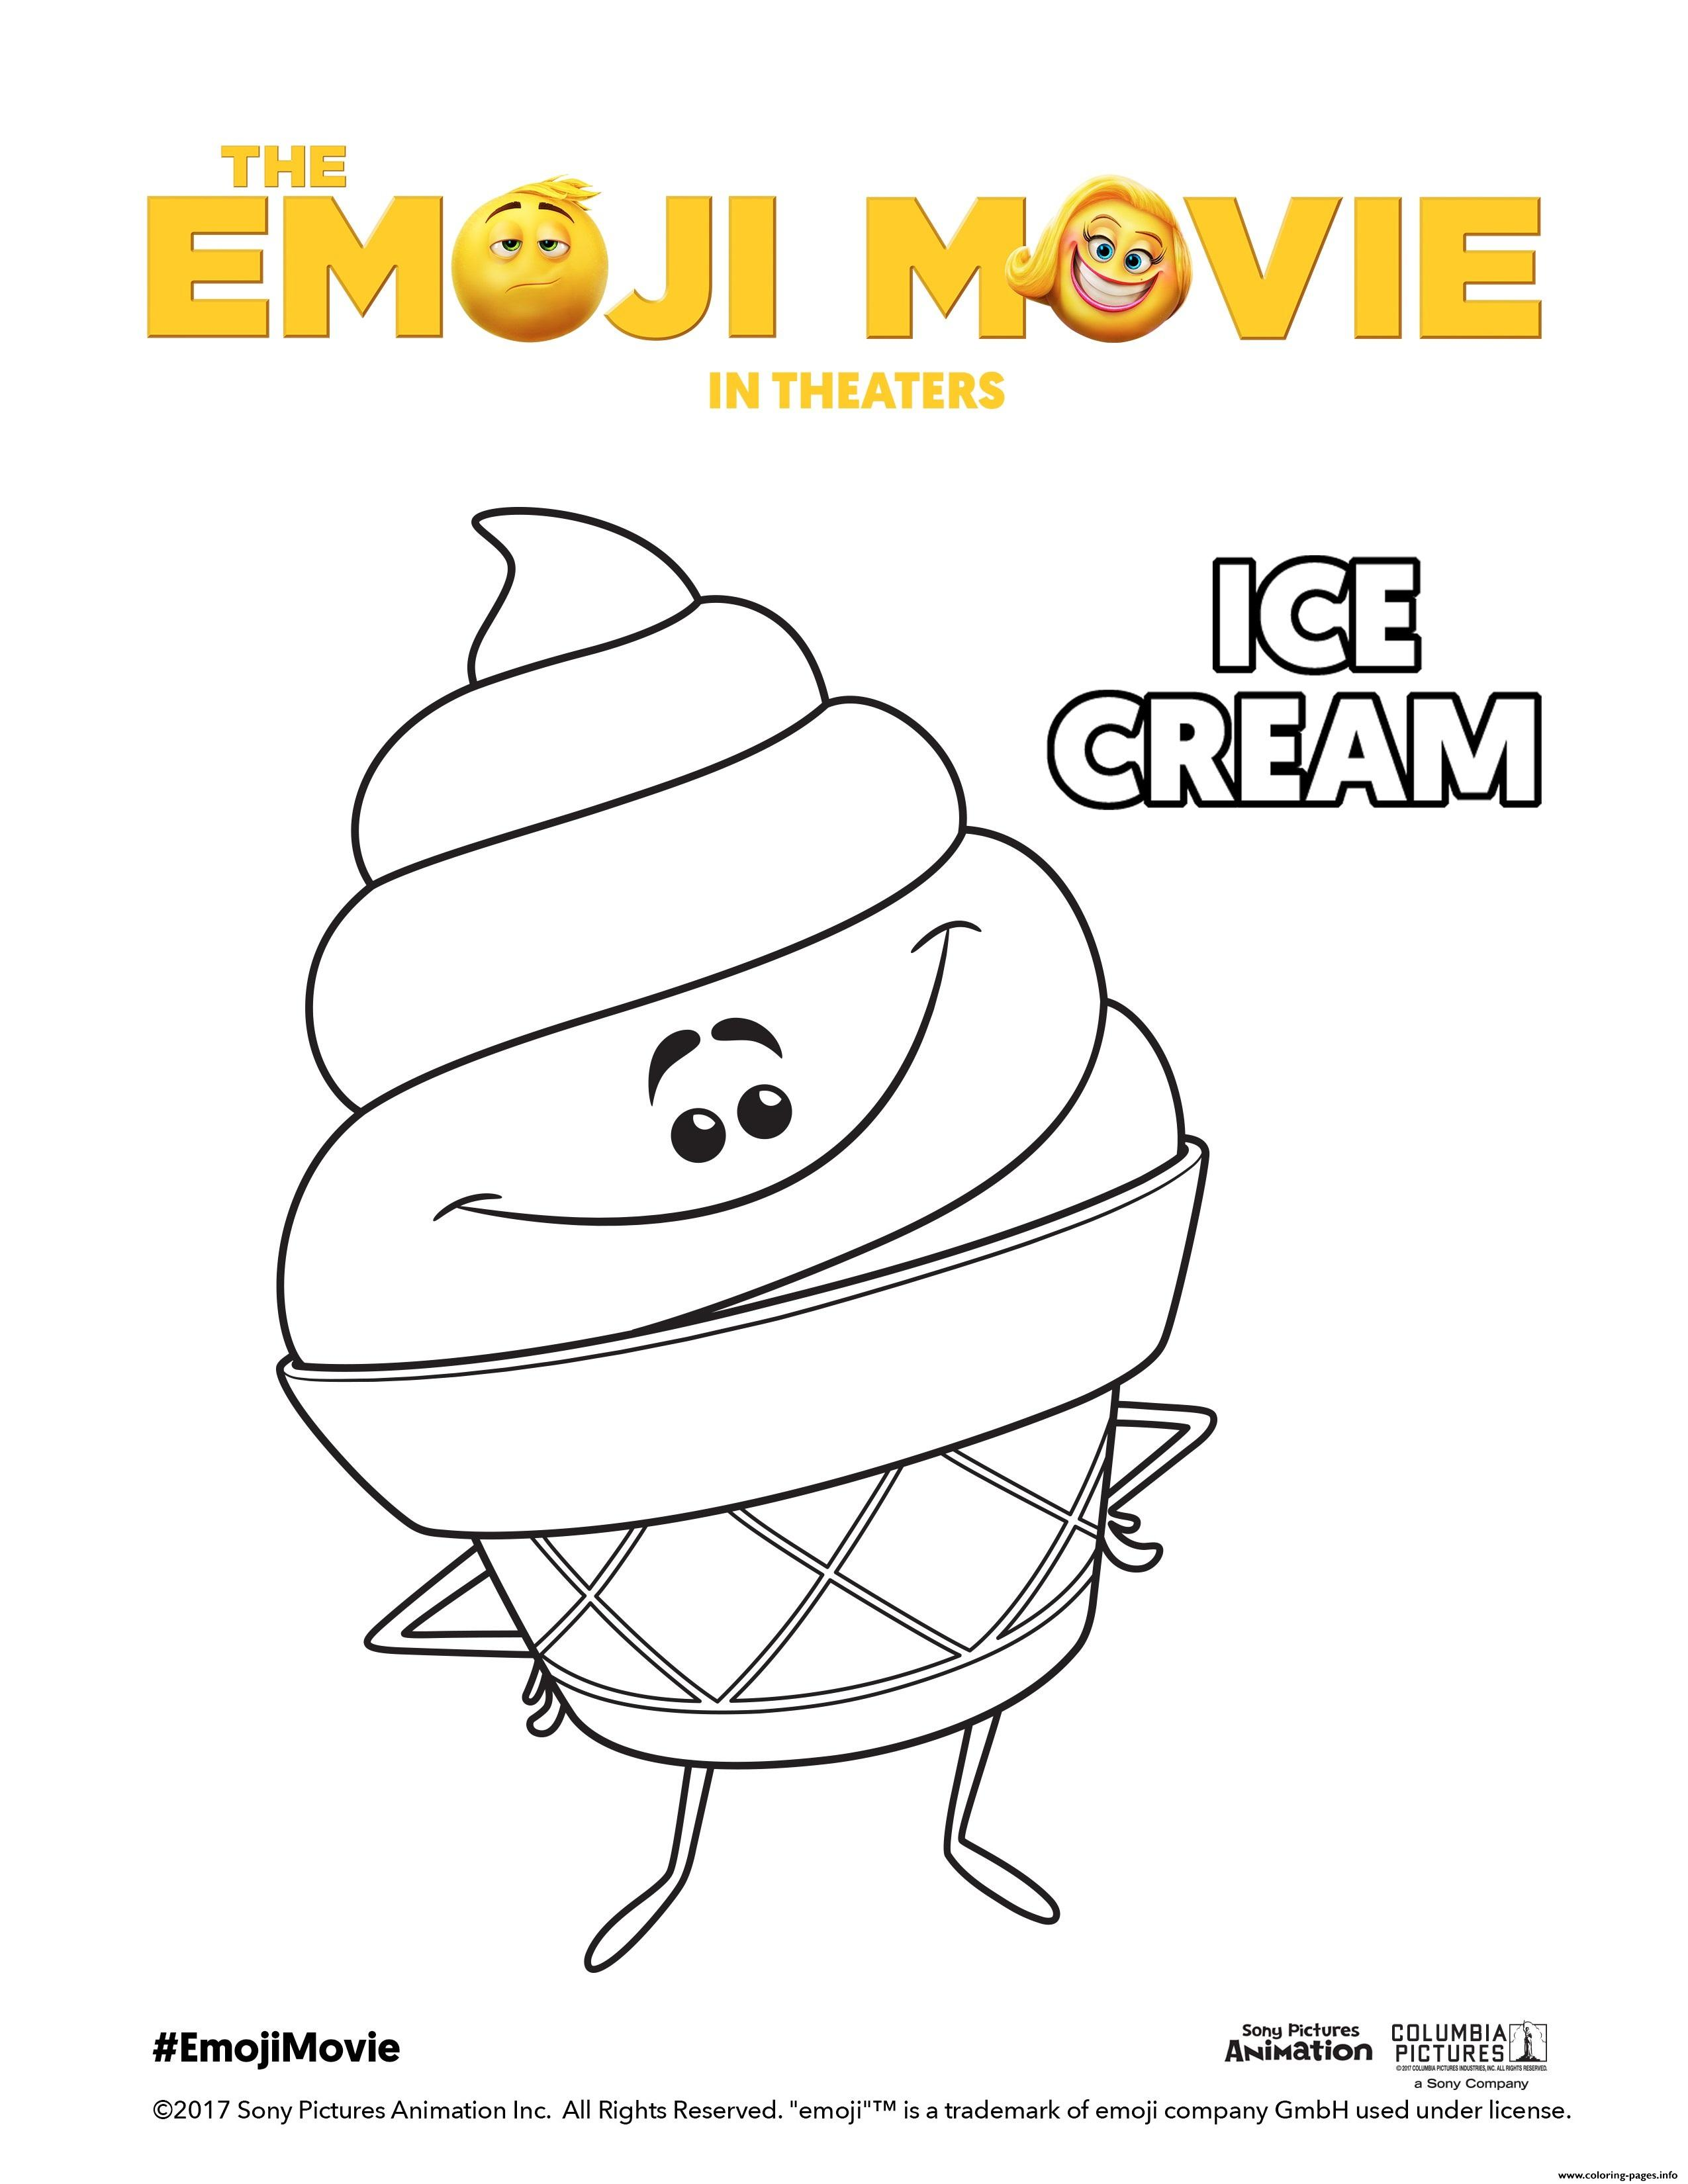 Ice Cream Emoji Movie Coloring Pages Printable